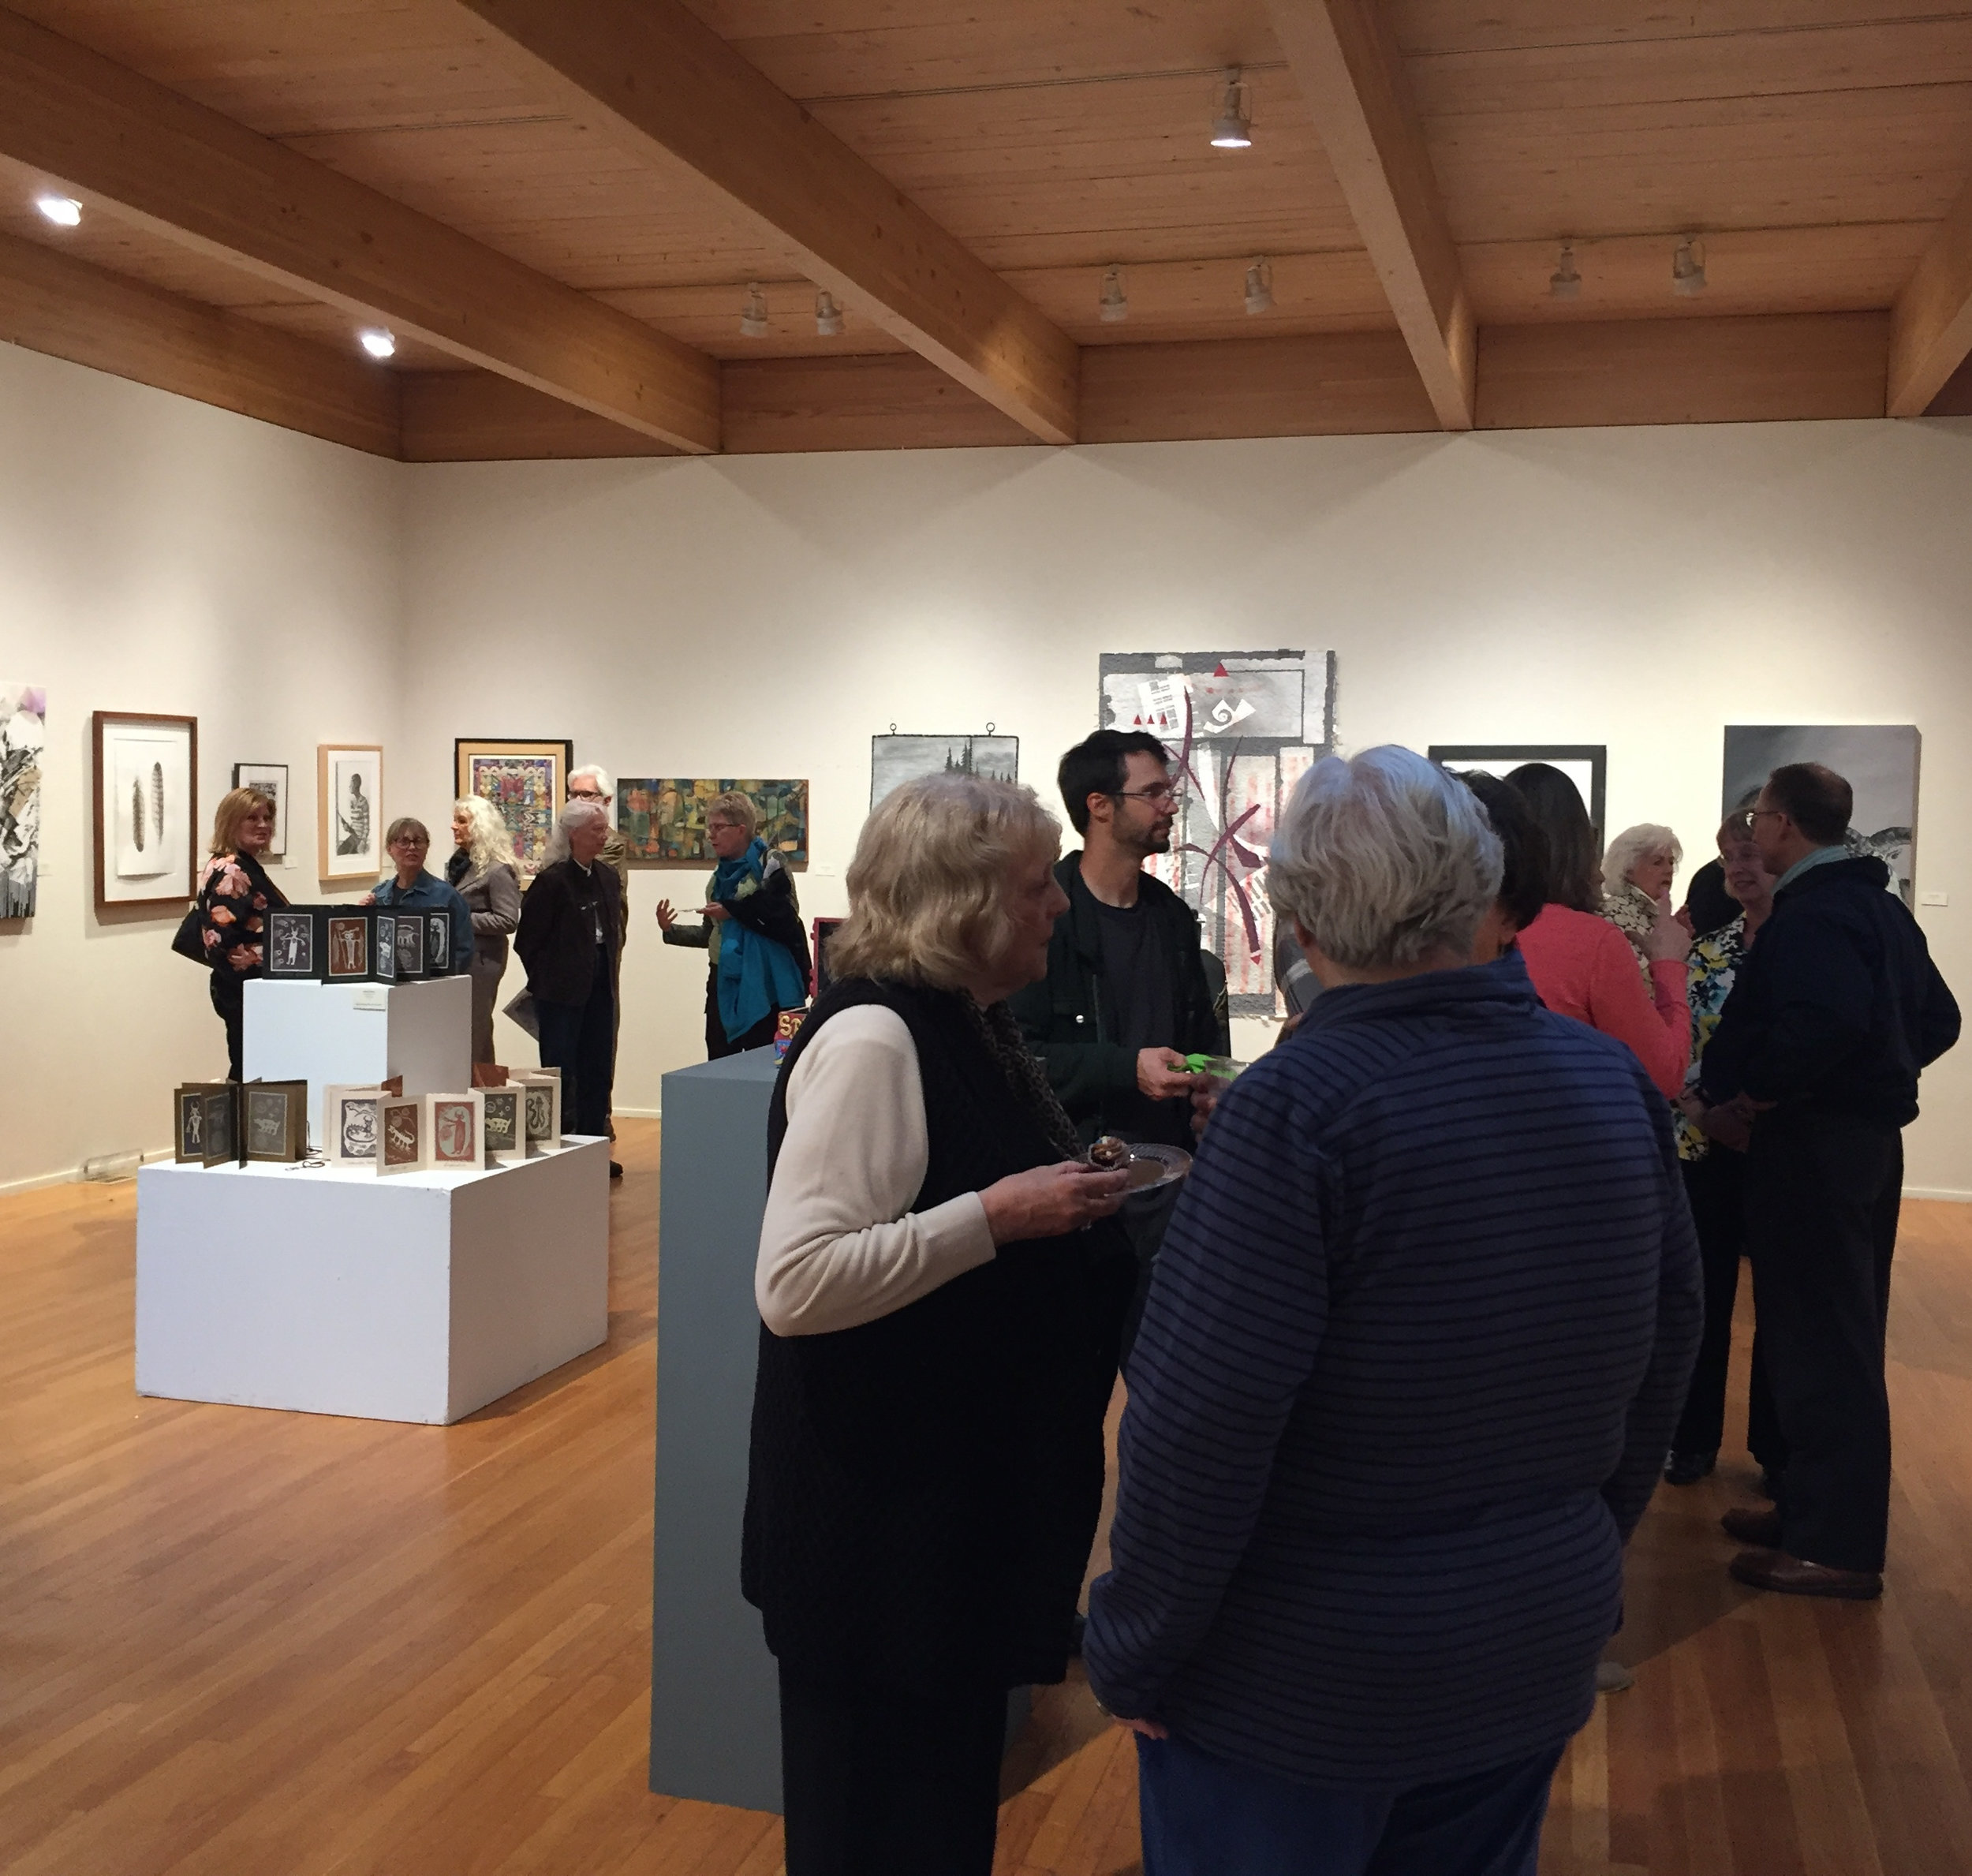 A lot of Ohio-based talent packed into two floors of this gallery!